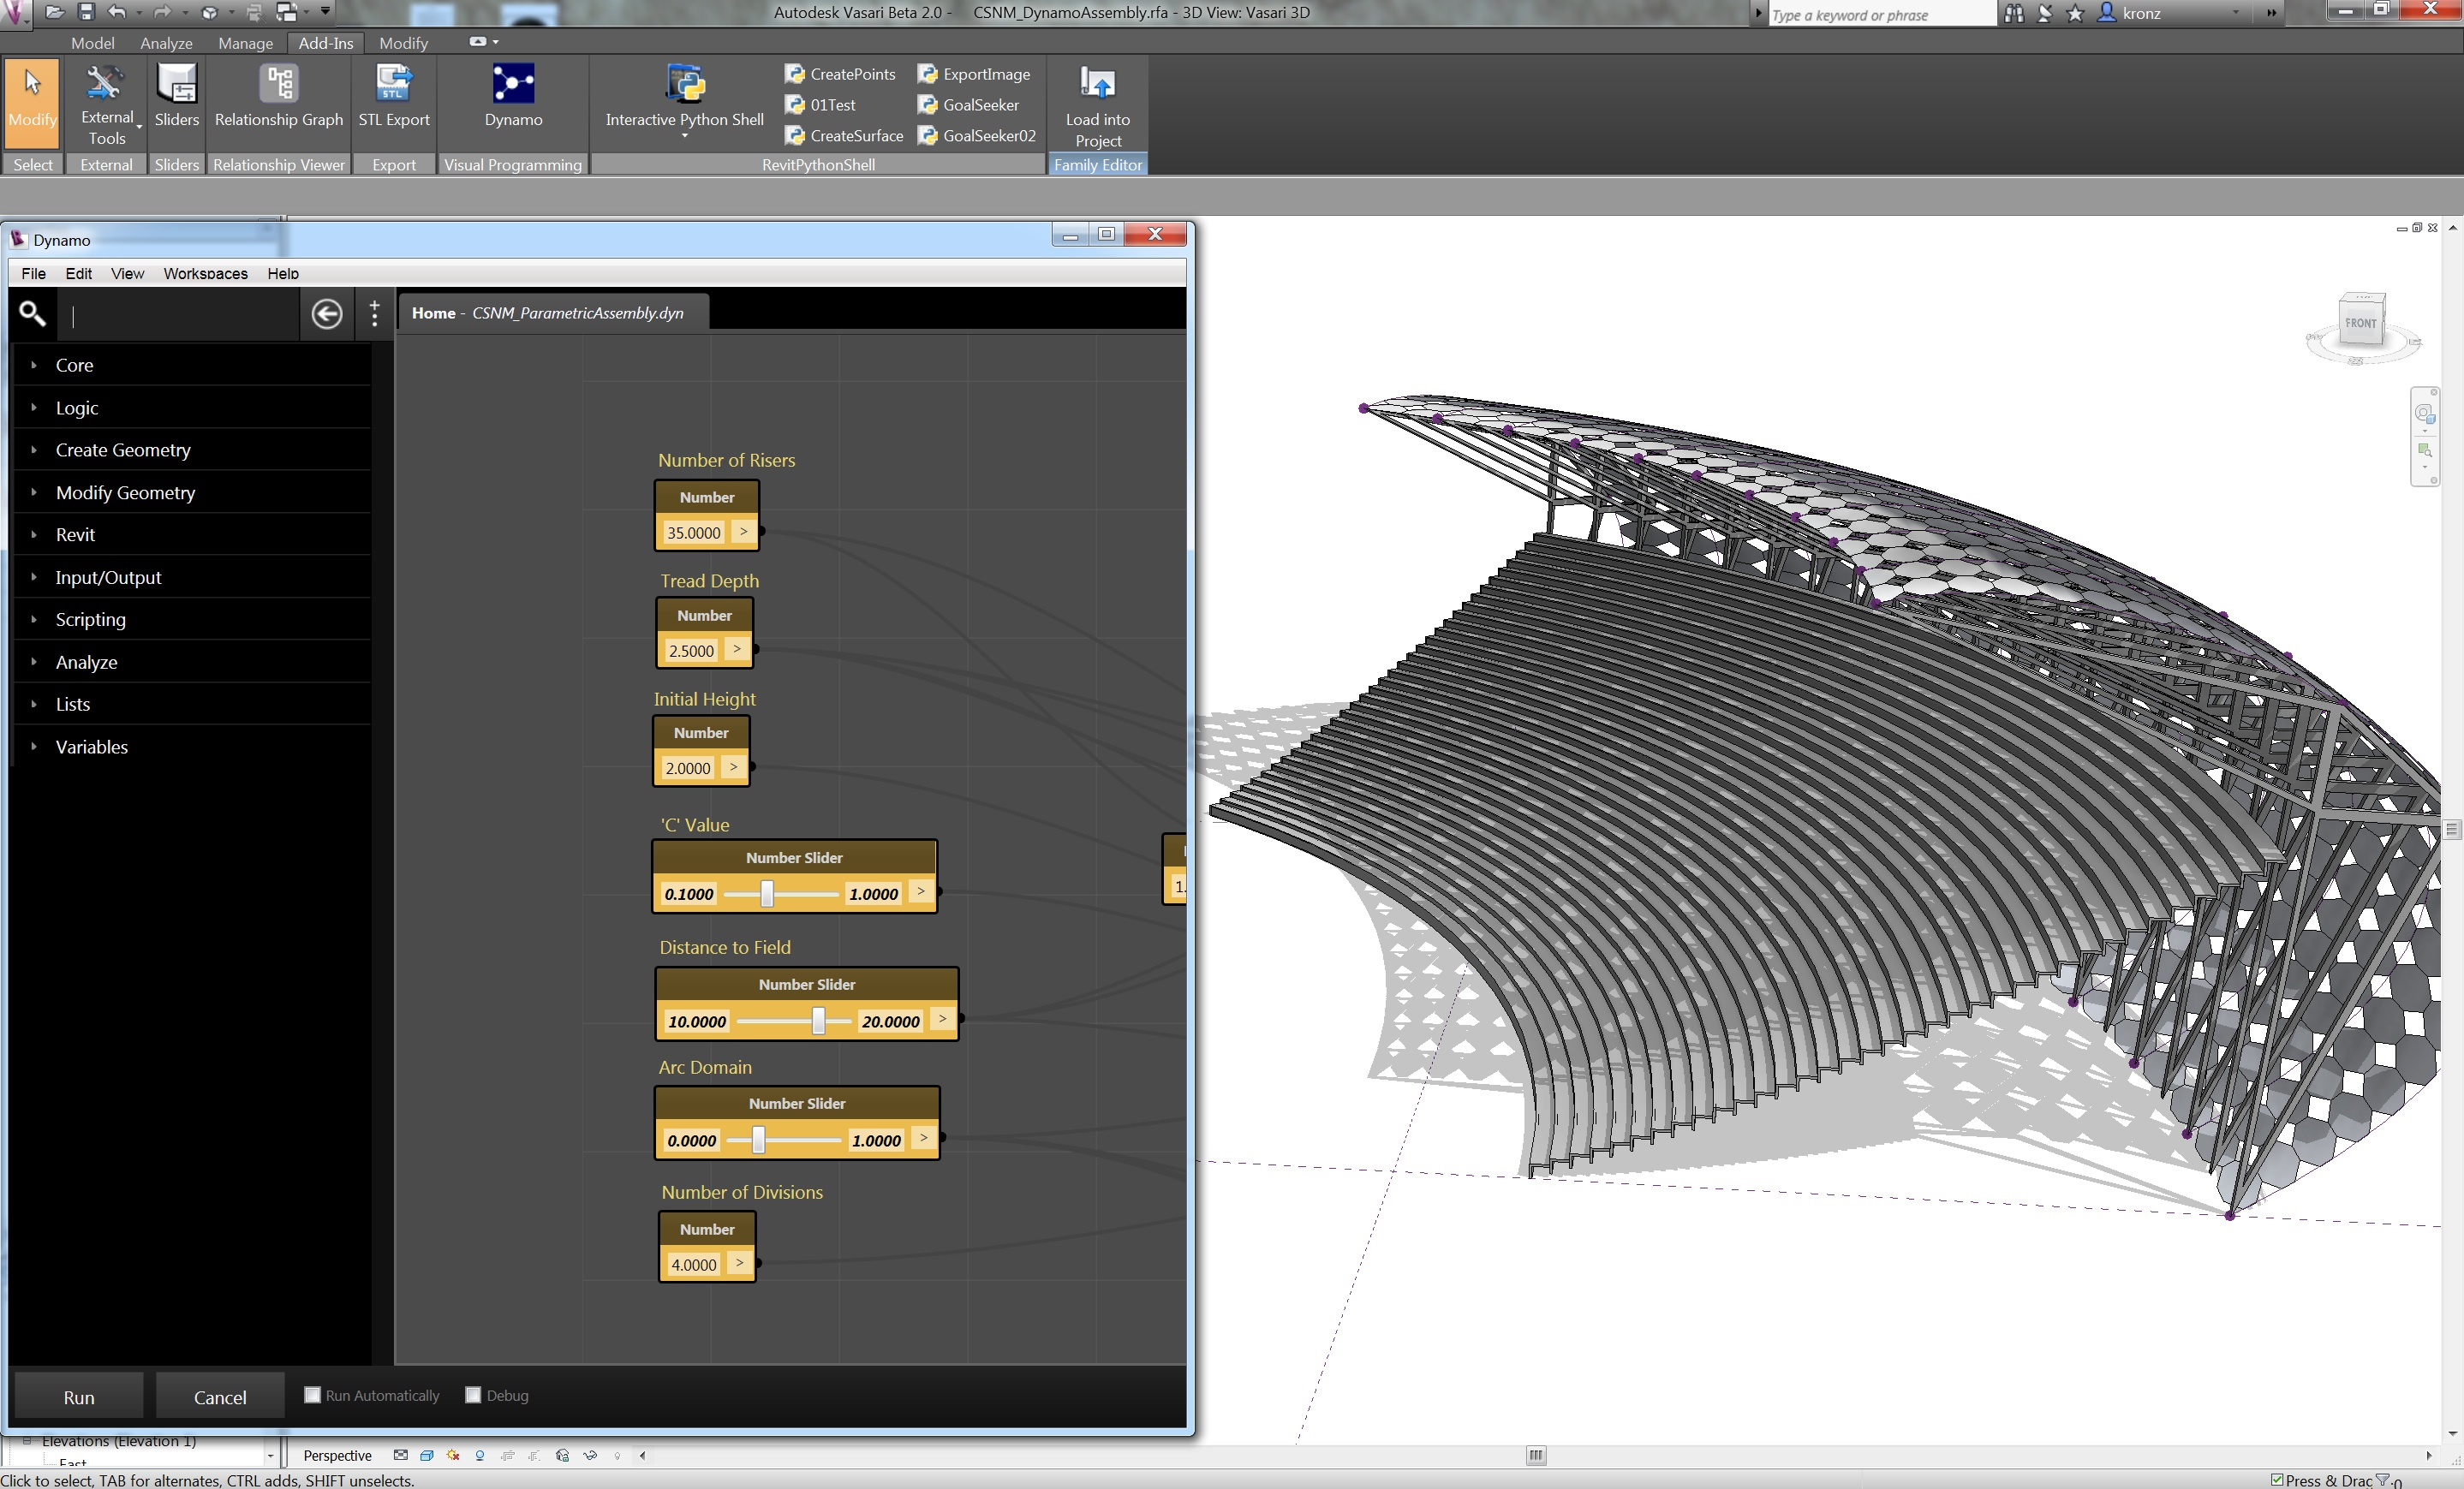 Aia Autodesk Introduces Computational Modeling Tool